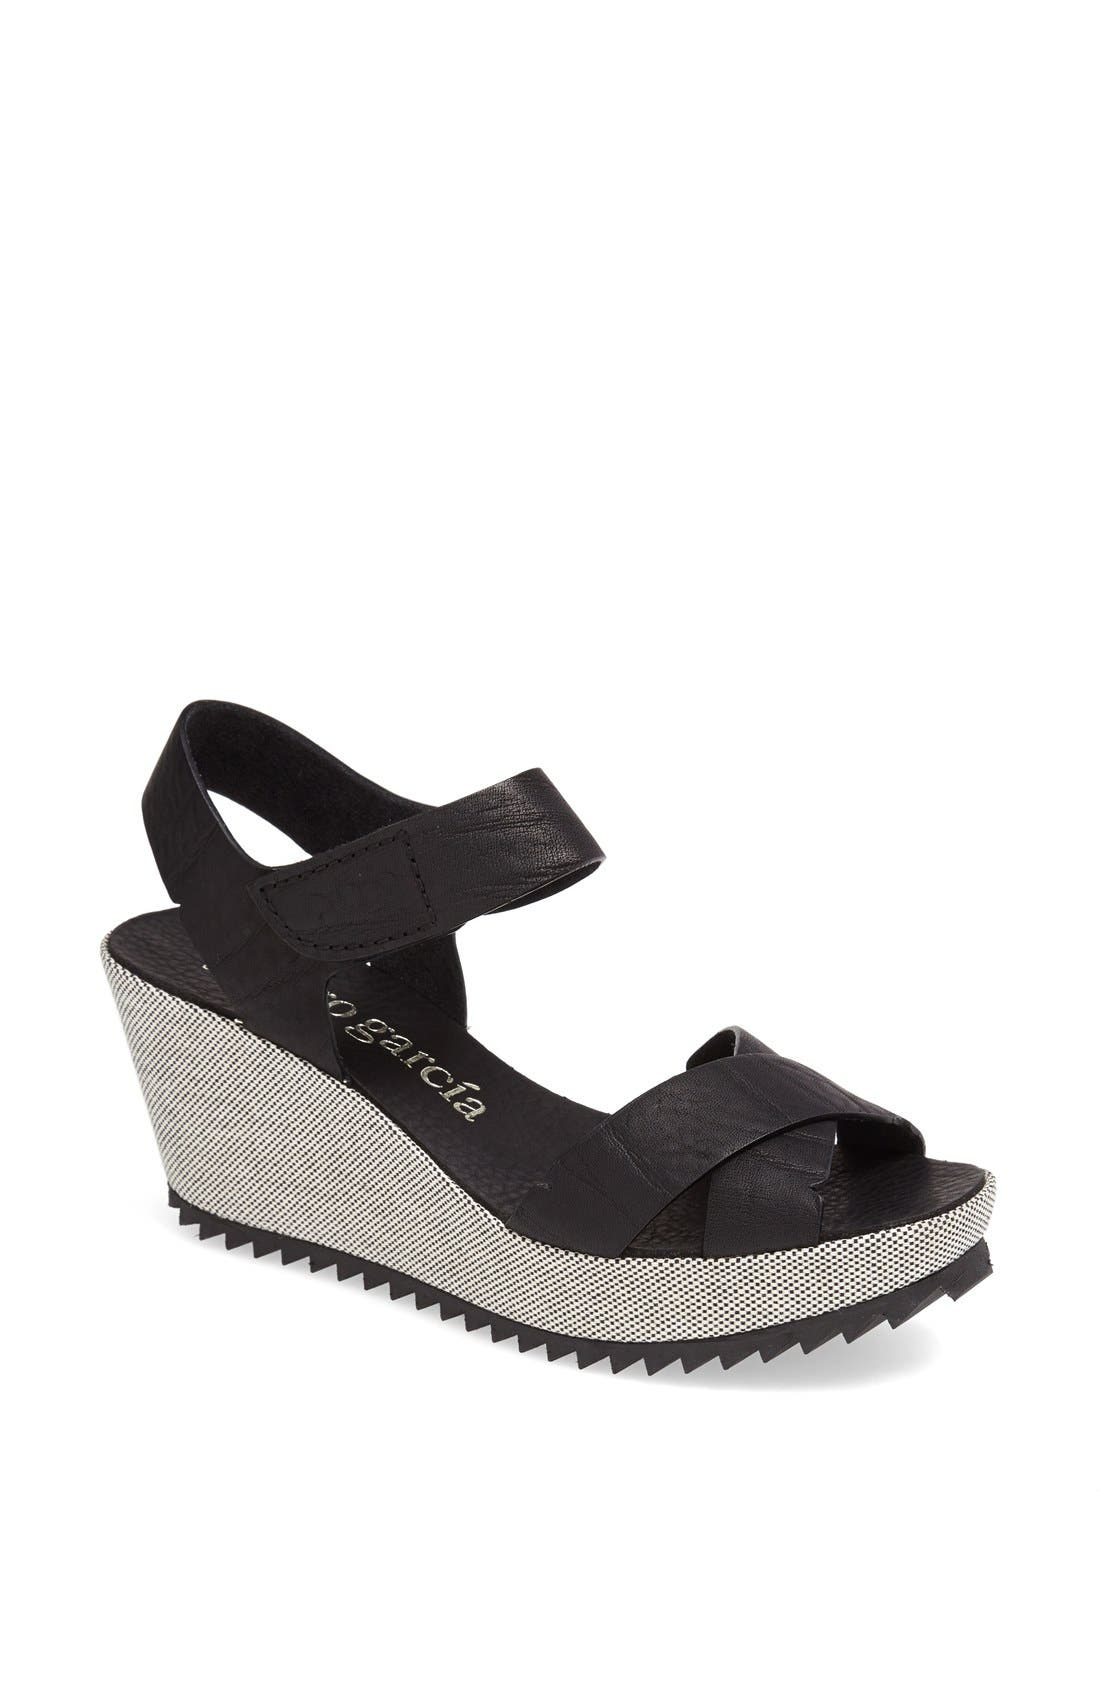 Alternate Image 1 Selected - Pedro Garcia 'Freida' Crisscross Wedge Sandal